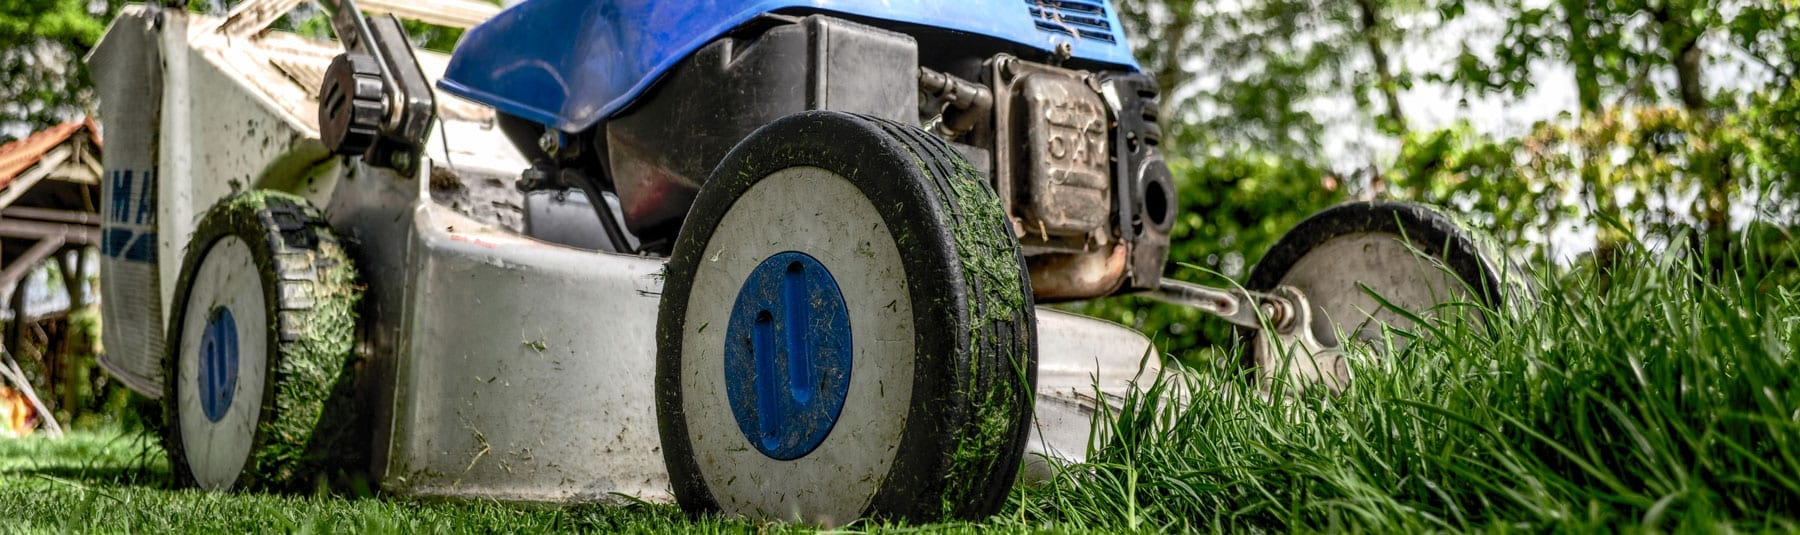 Avoiding Lawnmower Accidents Injuries & Lawnmower Accident Lawsuit